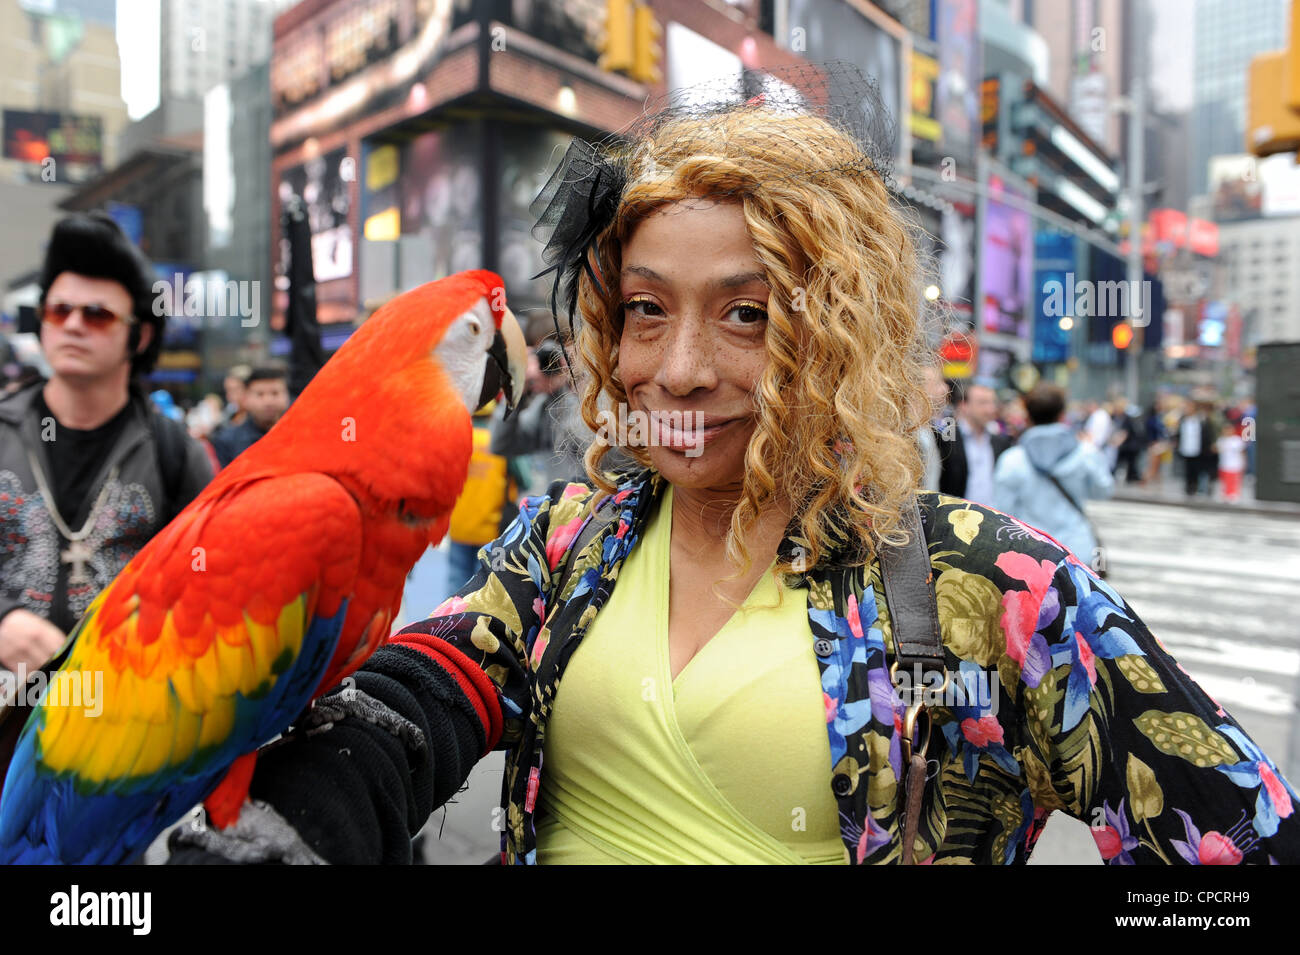 Entertainer with her Parrot in Times Square, New York - Stock Image